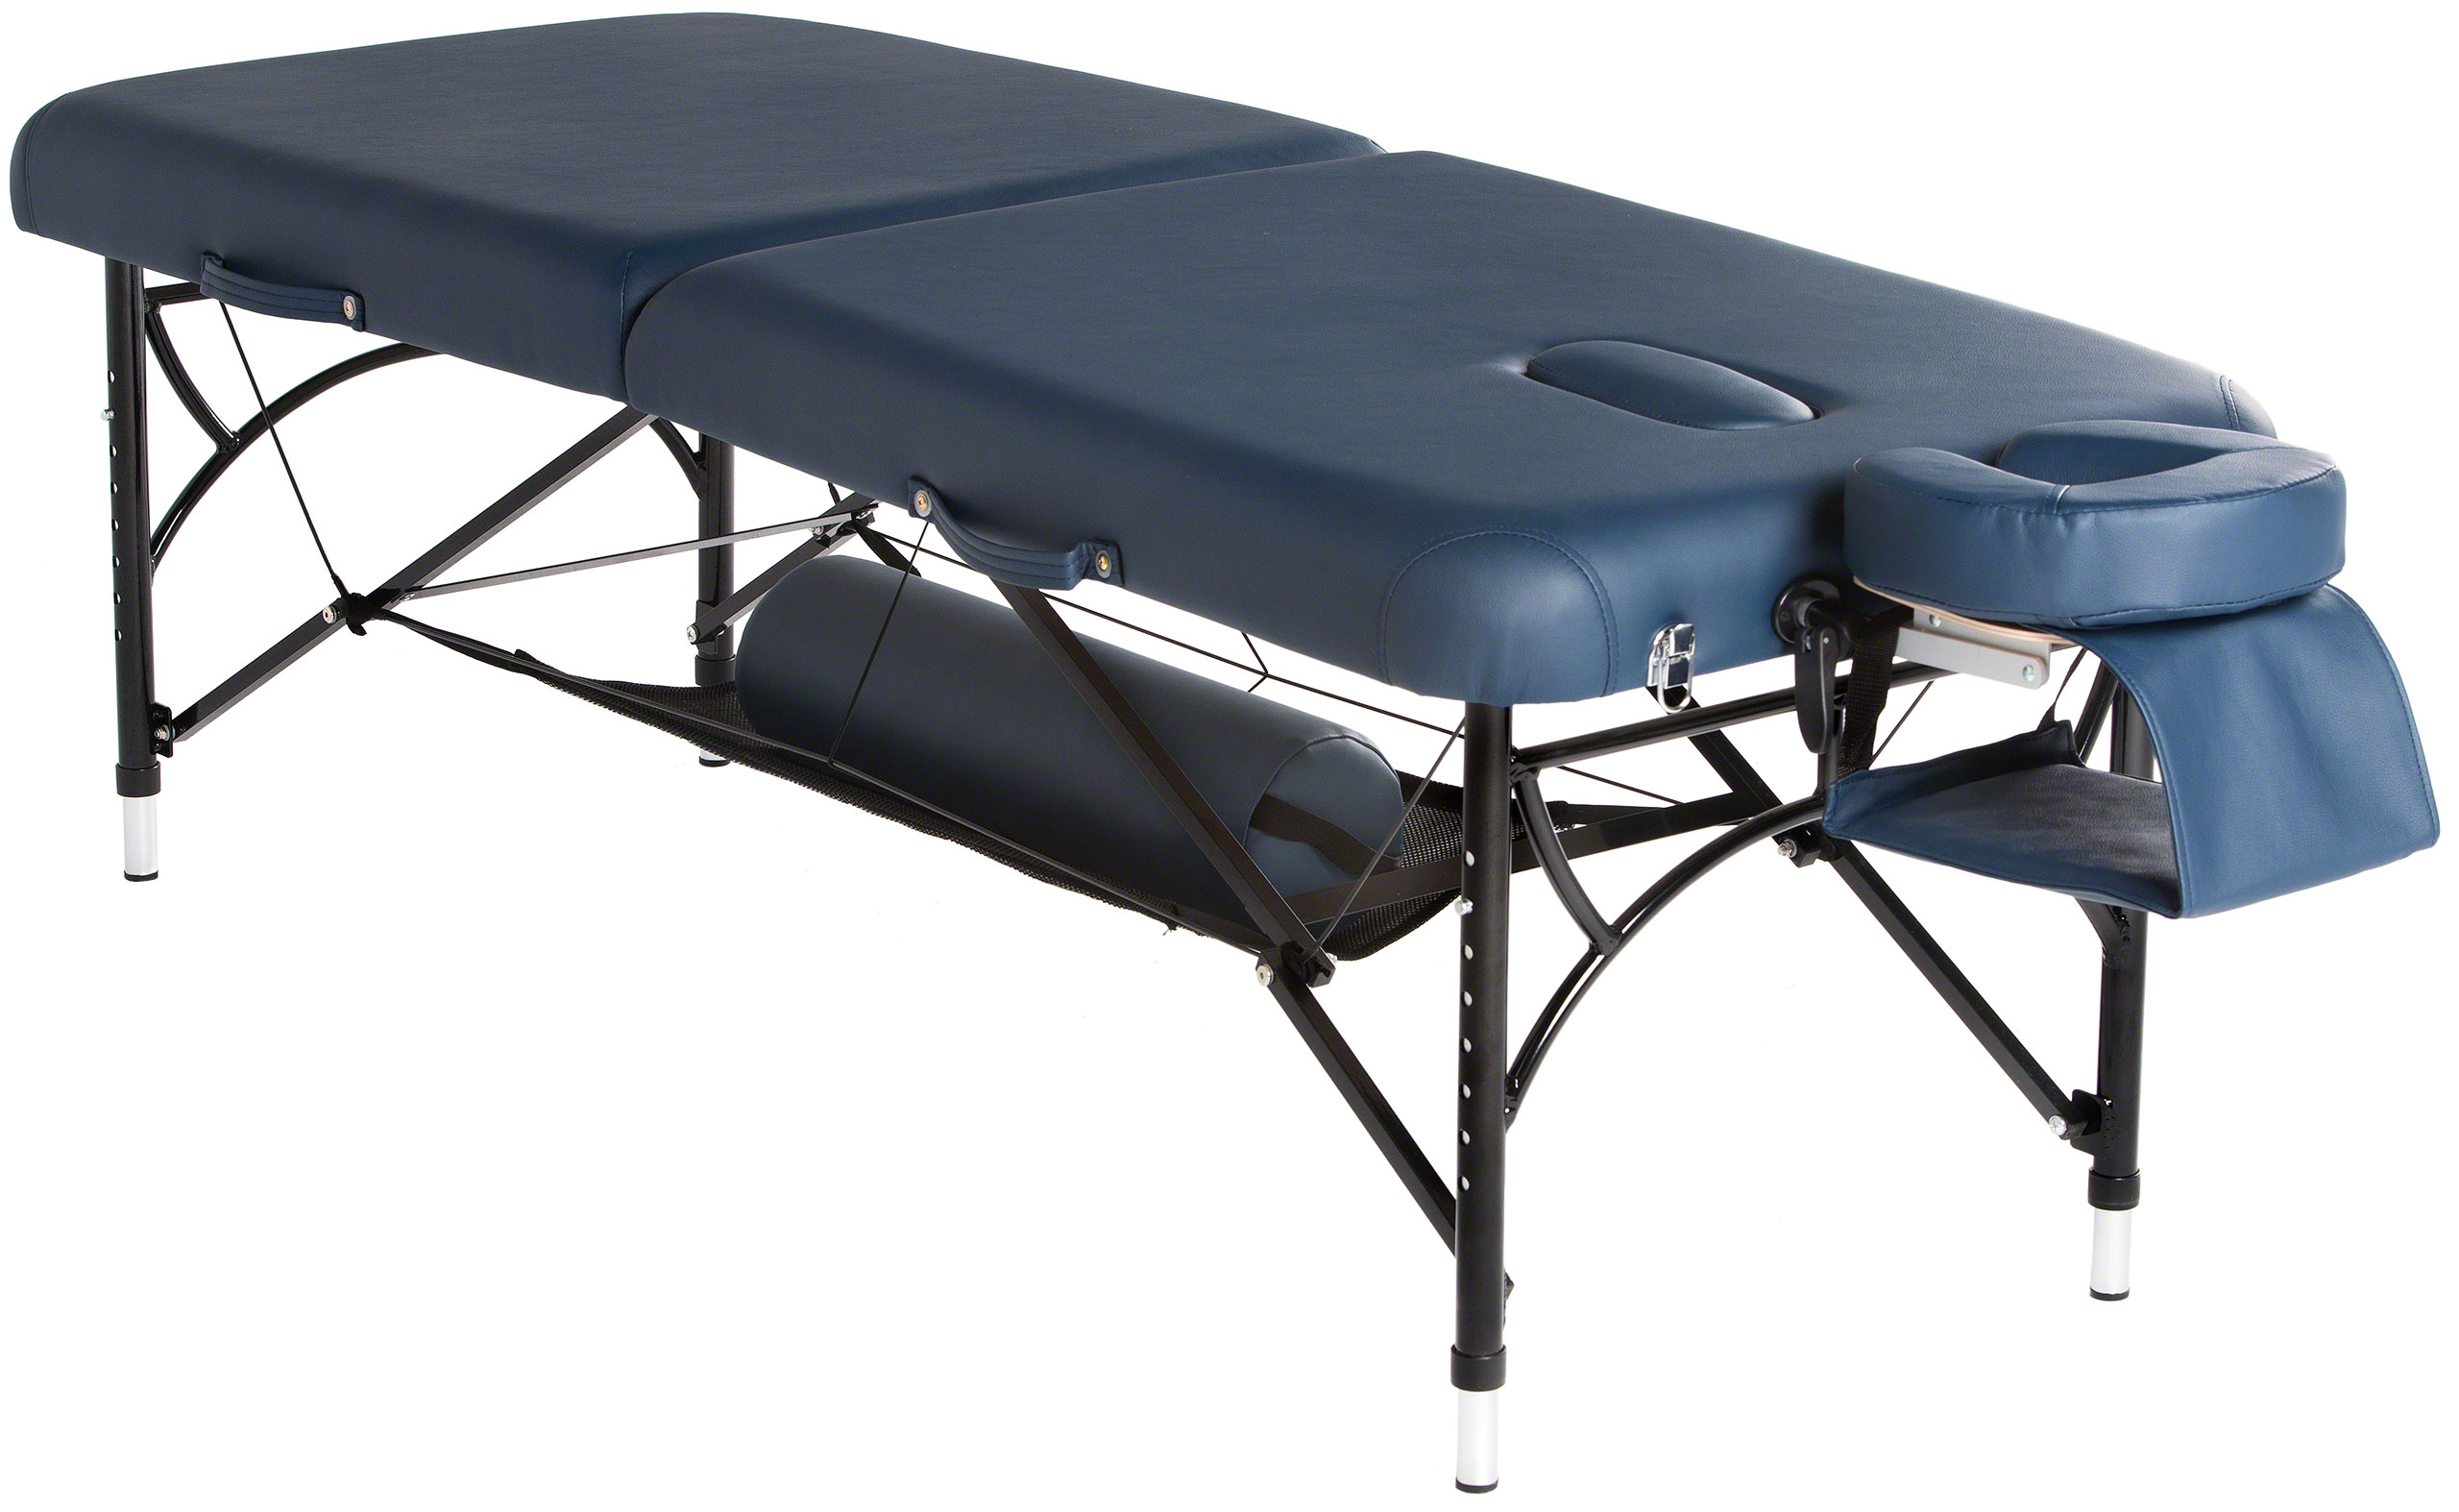 Tremendous Bodypro Deluxe Active Massage Table Reviews Home Interior And Landscaping Eliaenasavecom